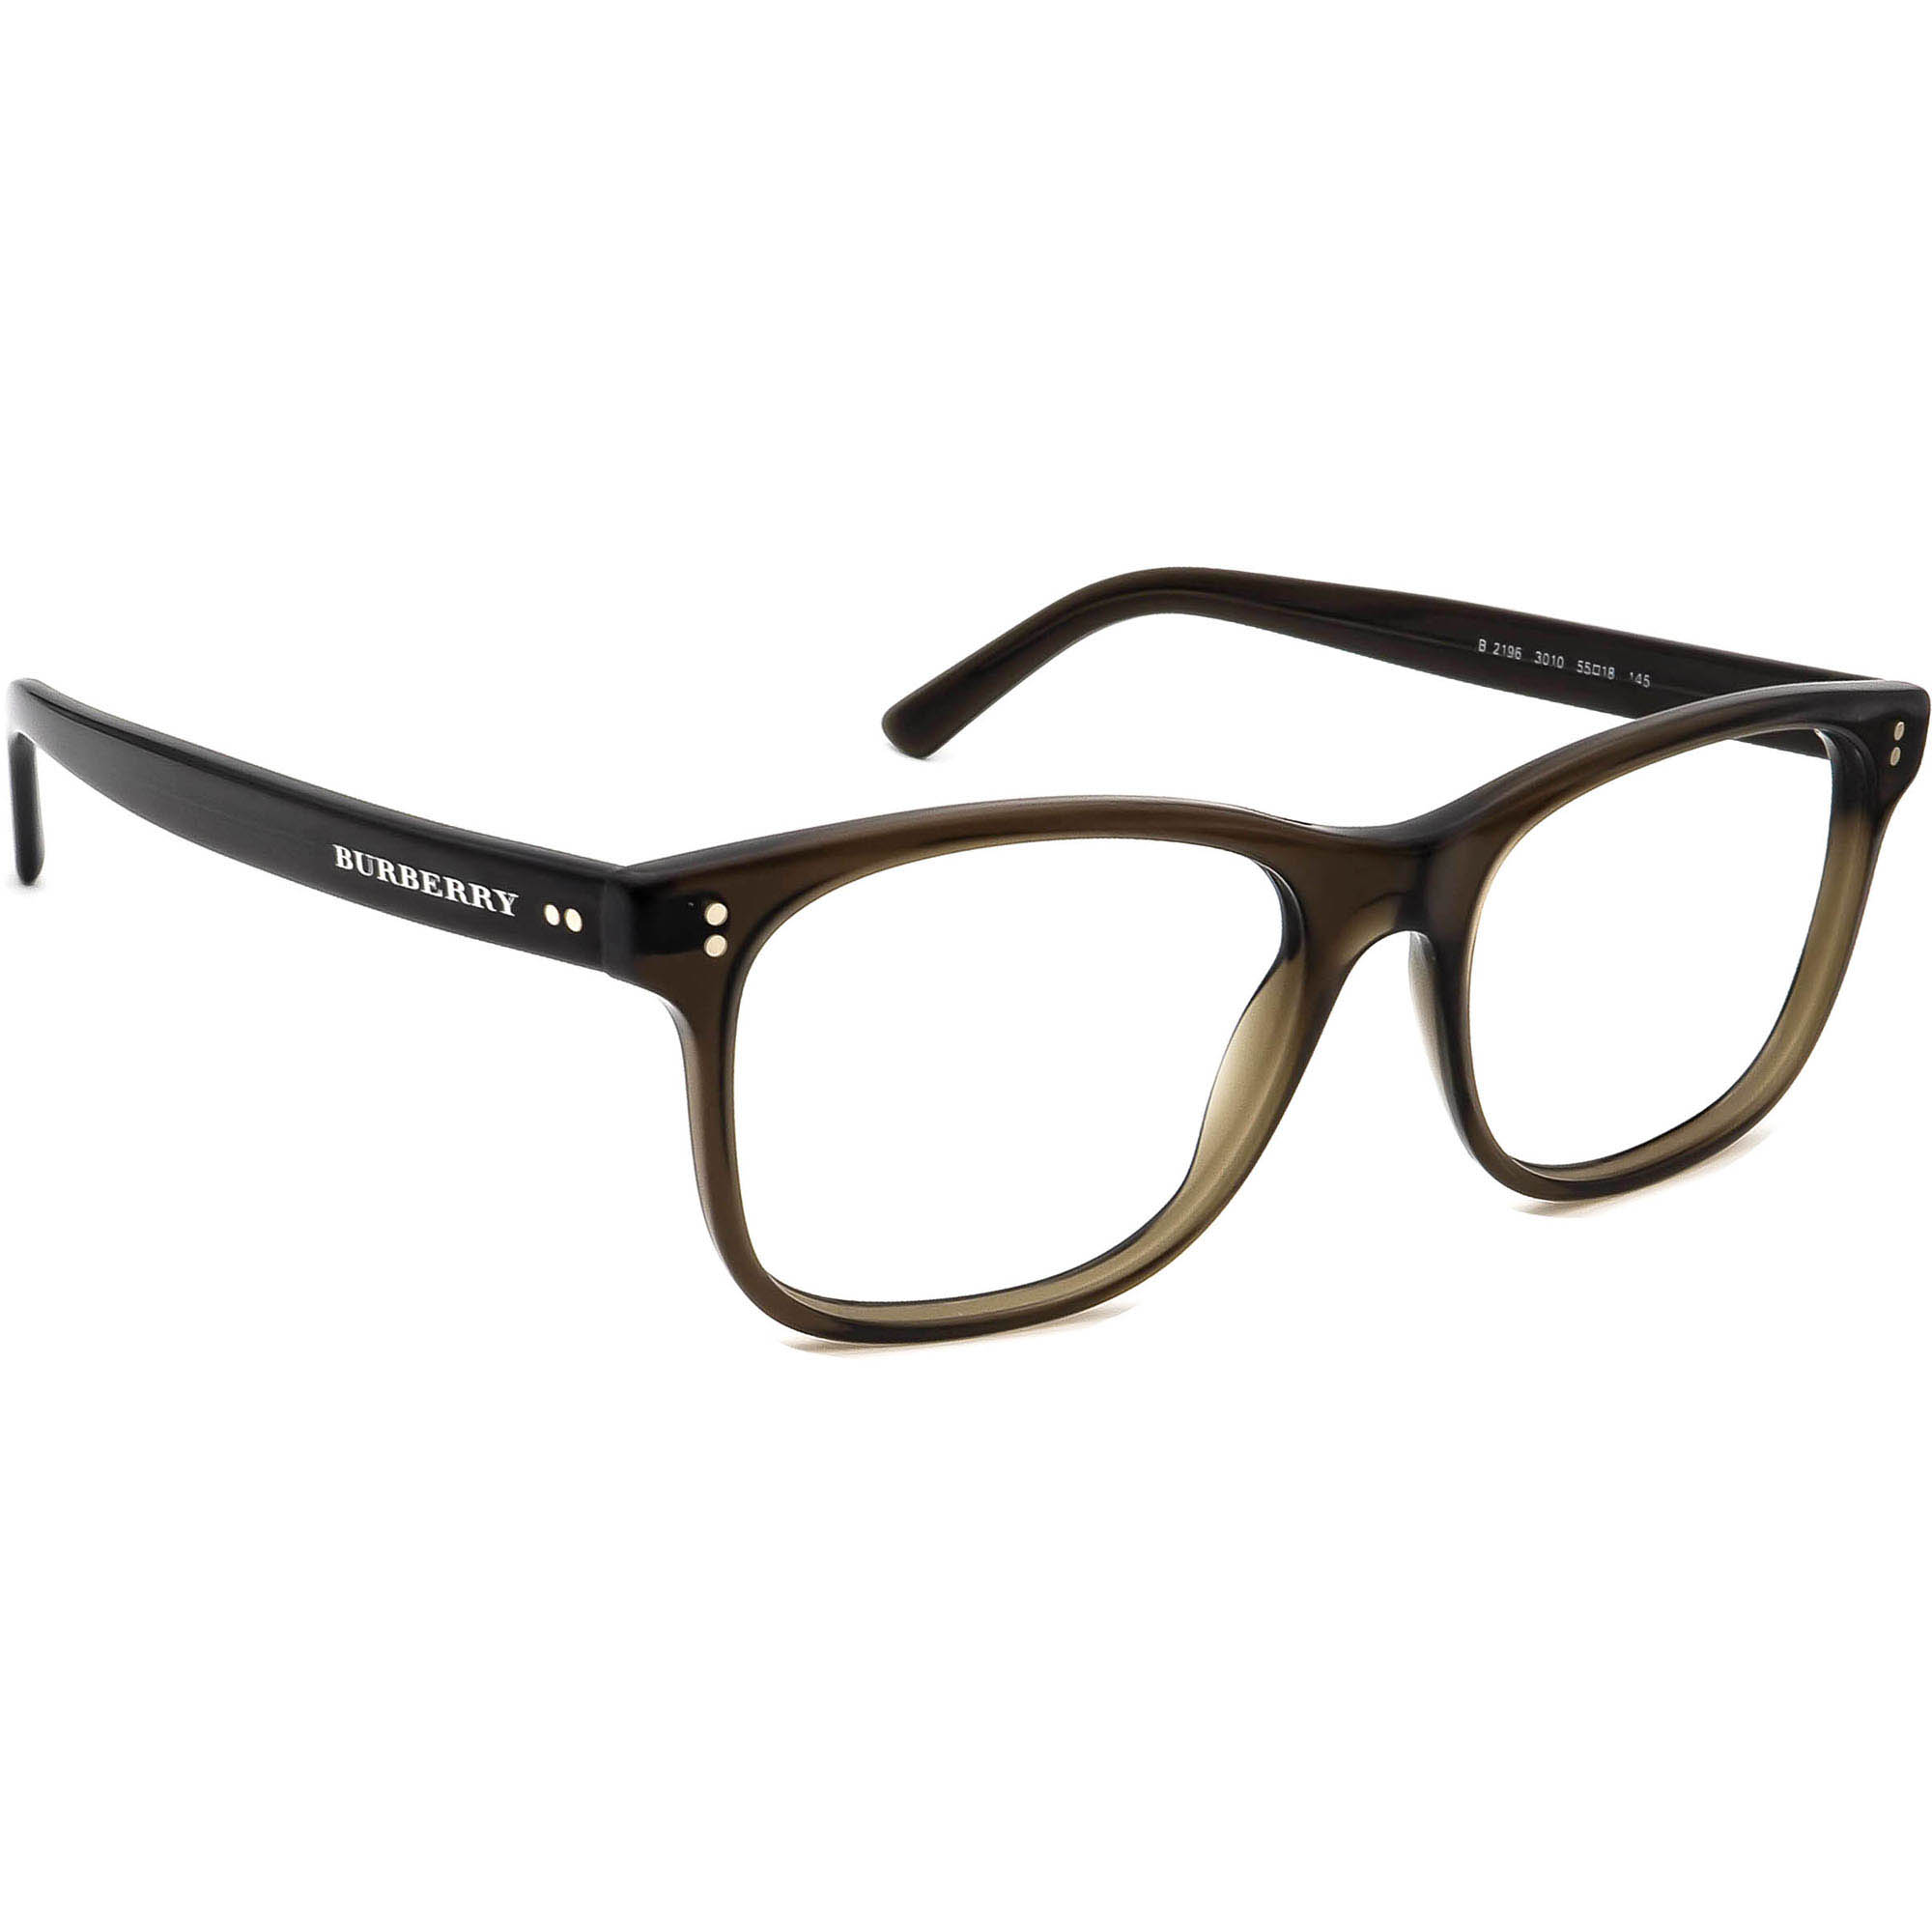 Burberry B 2196 3010 Eyeglasses